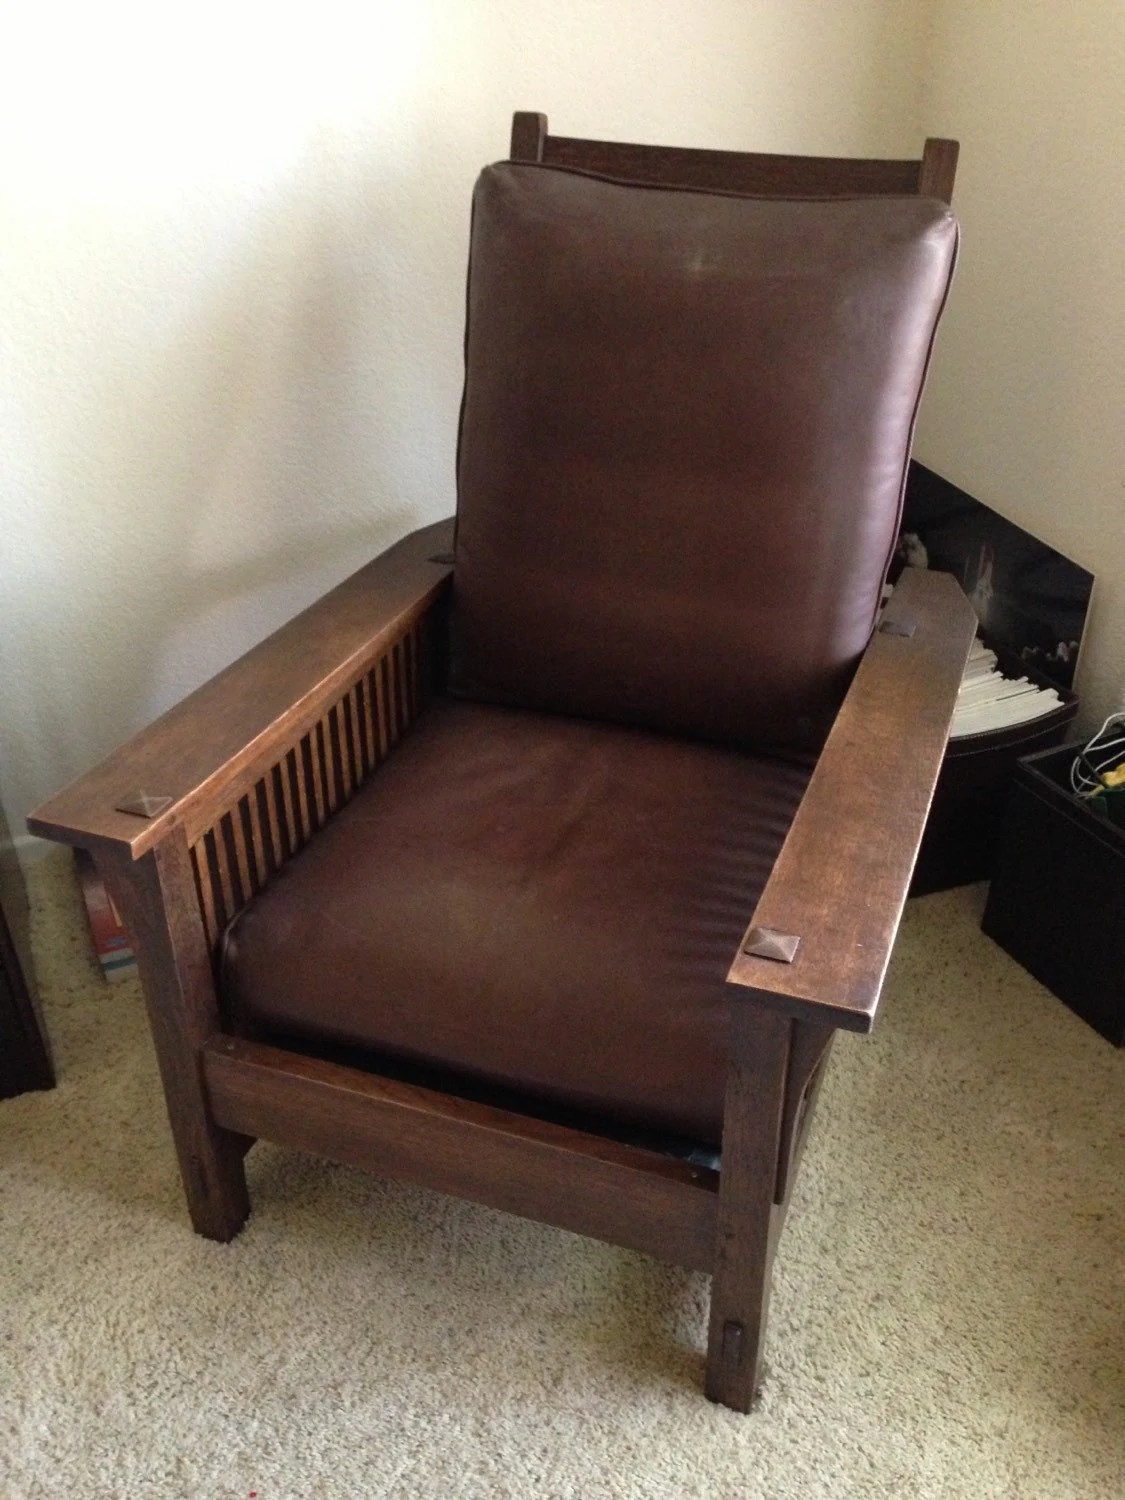 Morris Chairs Gustav Stickley Antique Morris Chair From Arts And Crafts